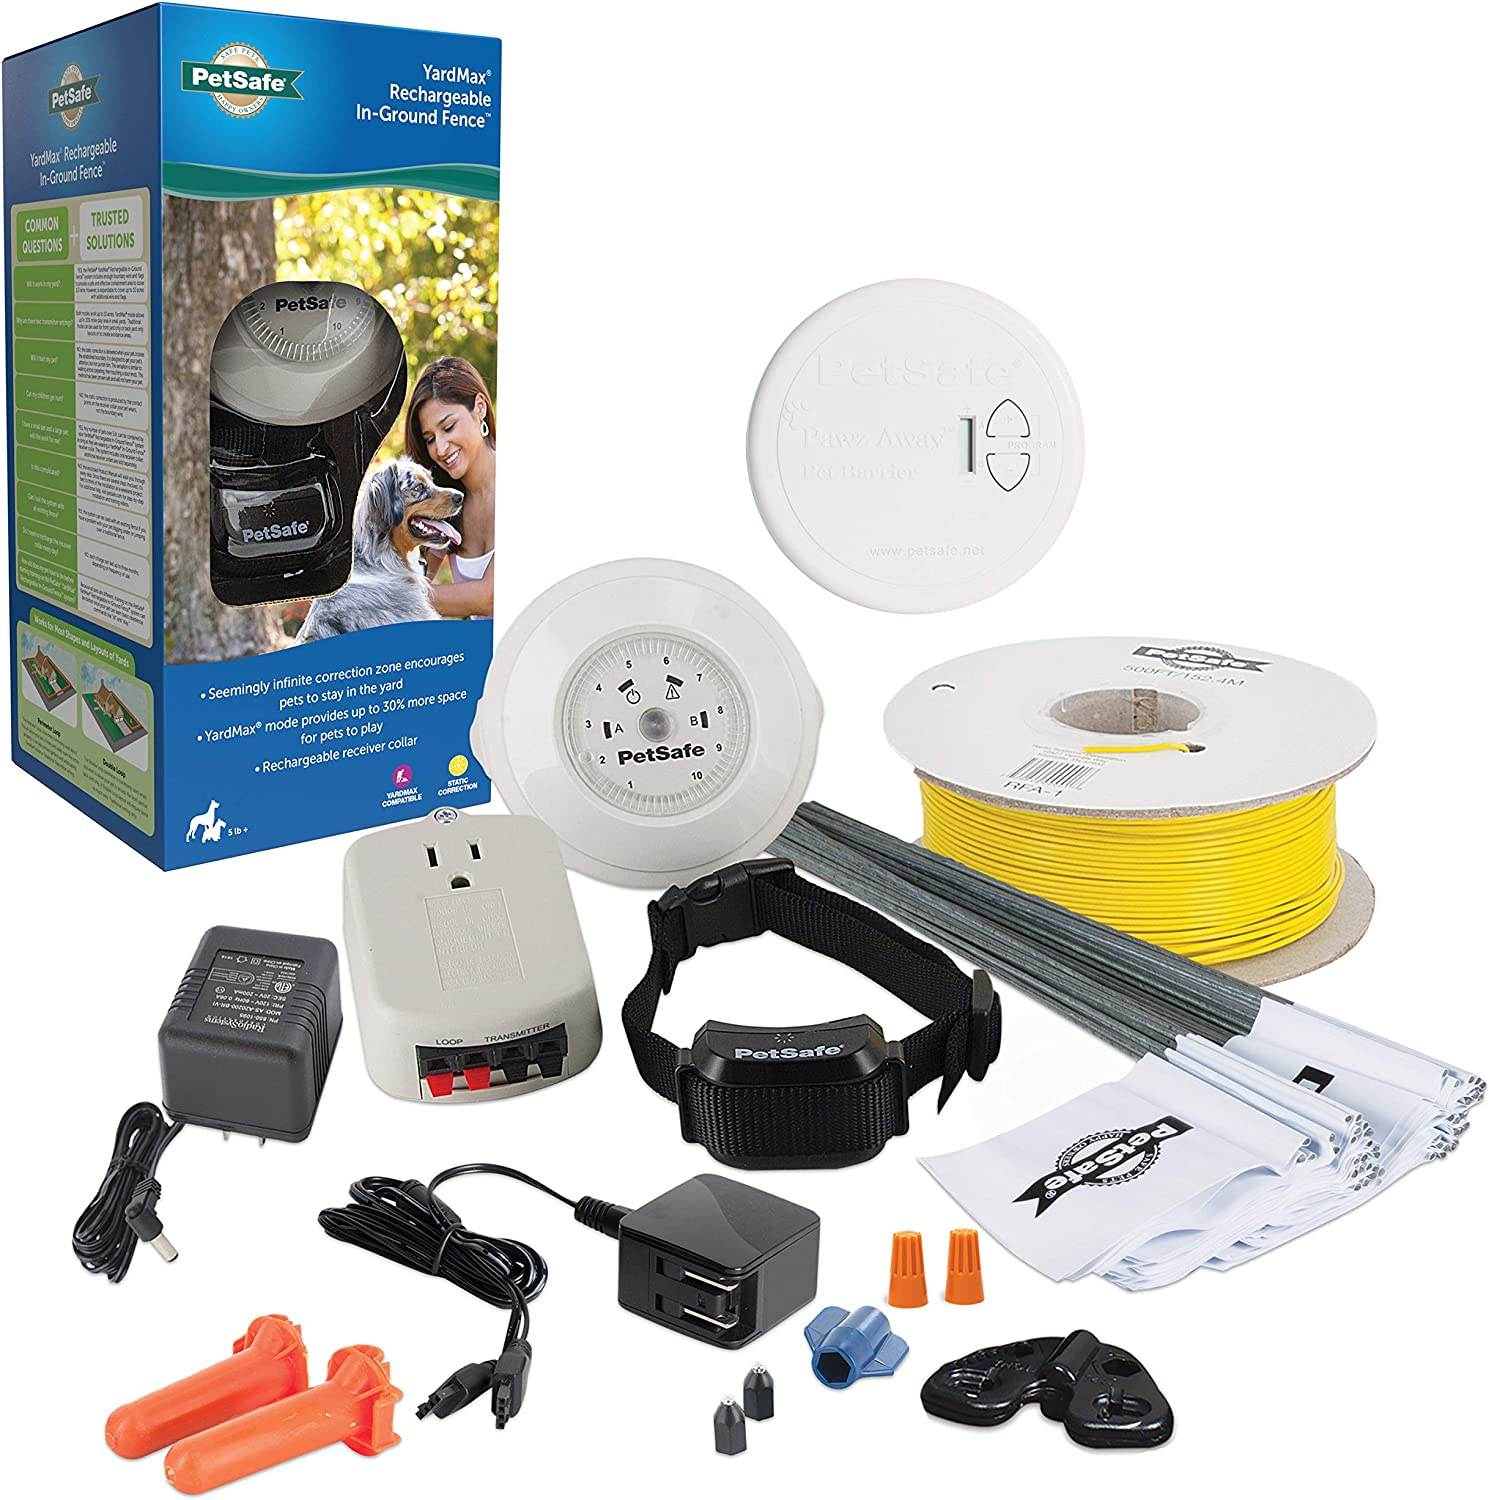 PetSafe YardMax Rechargeable In-Ground Fence – and Gorgeous Cats for Save money Dogs